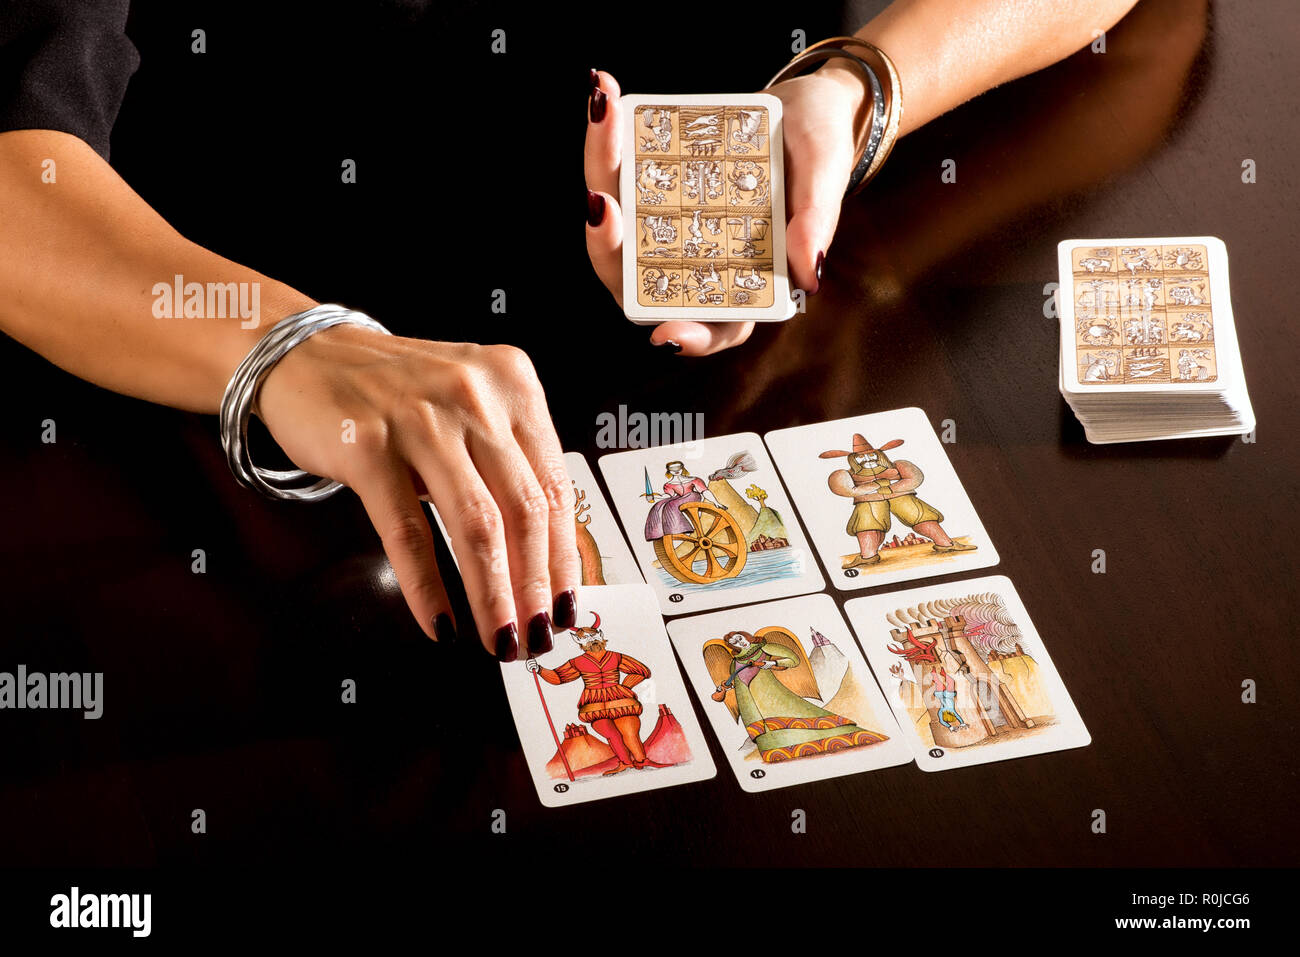 Fortune teller reading a deck of pictorial symbolic Tarot Cards in a close up on her hands laying them out on a table to make her prophesy - Stock Image